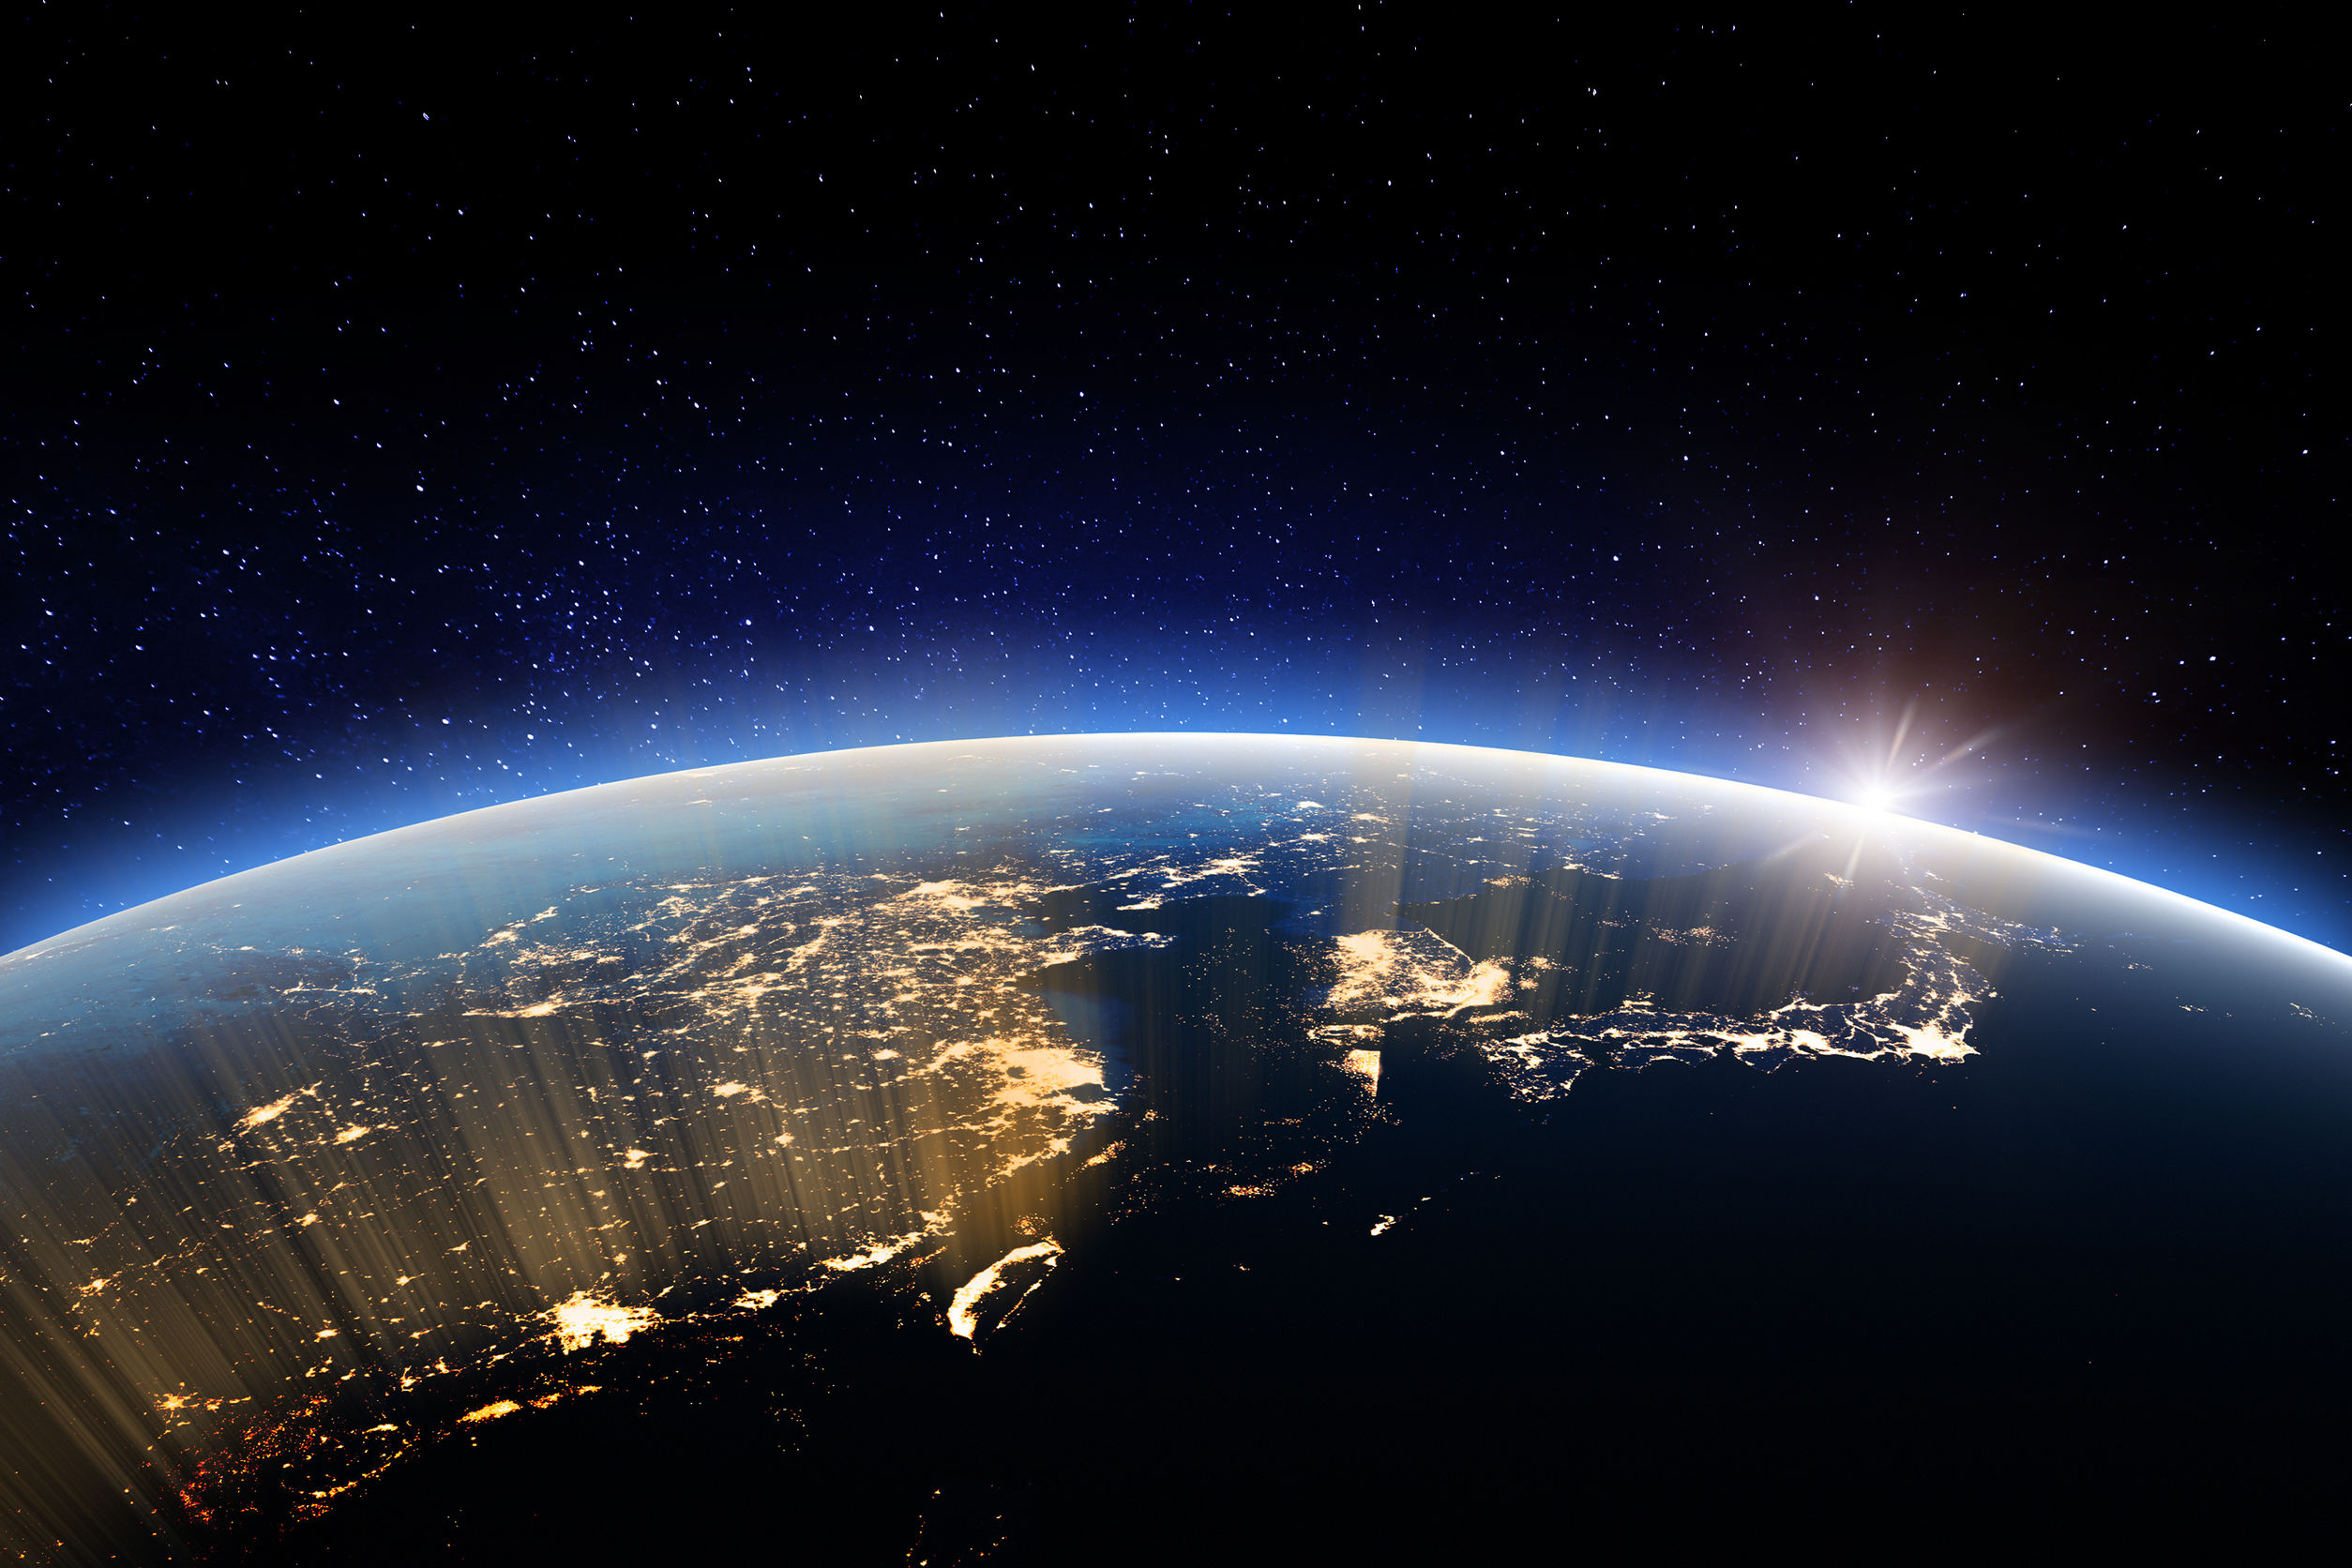 Planet at night. Elements of this image furnished by NASA